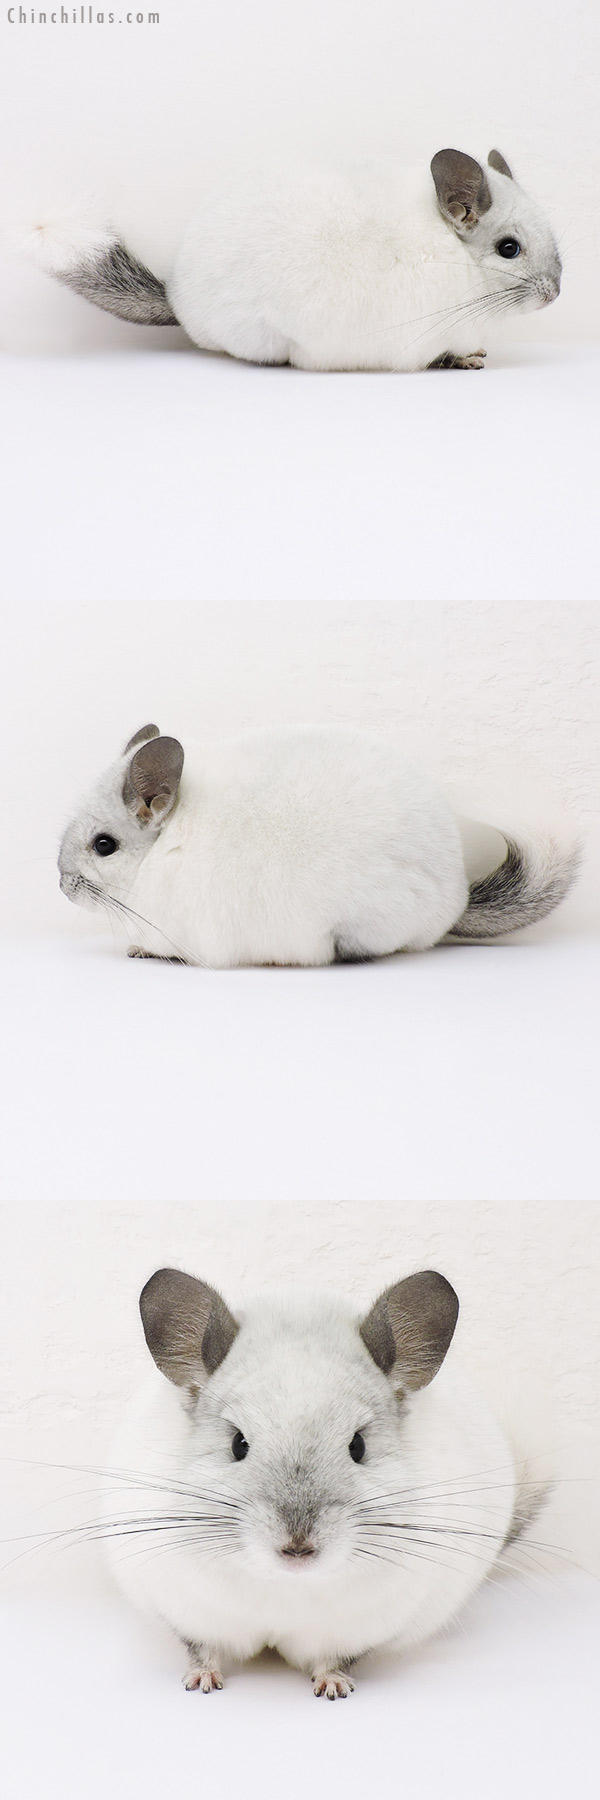 16134 Blocky Show Quality White Mosaic Female Chinchilla